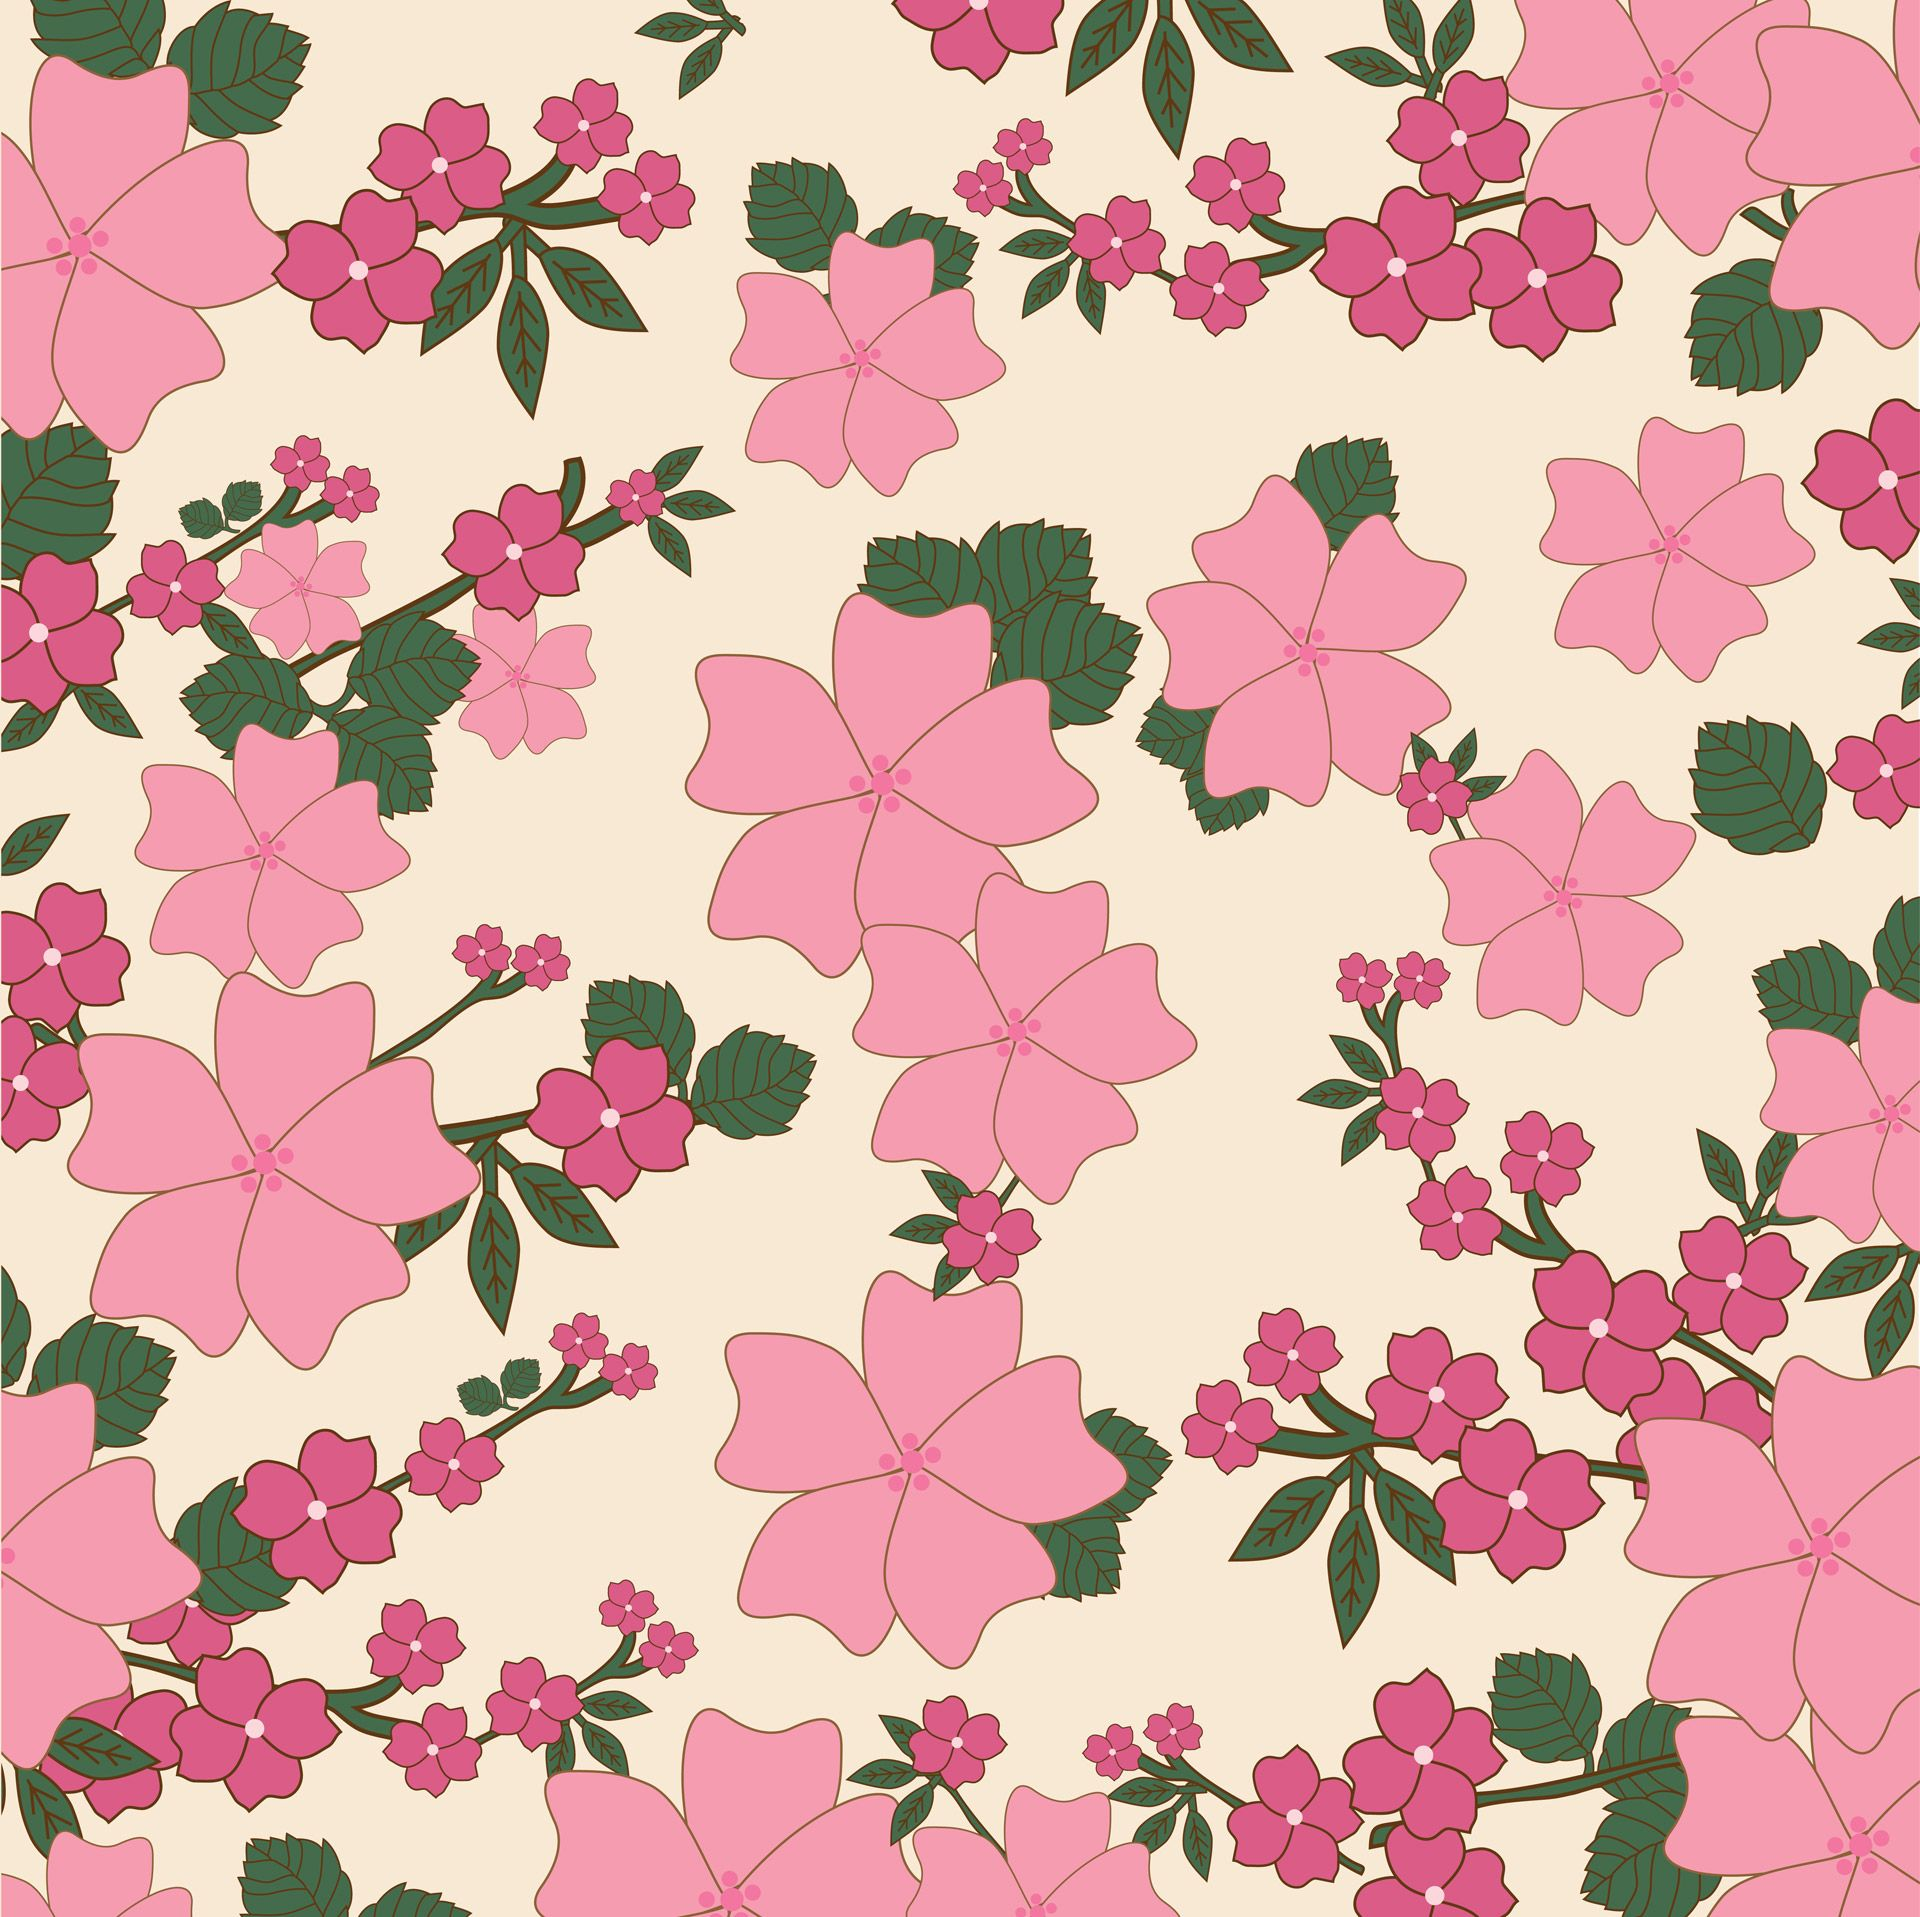 Vintage Floral Wallpaper Background Free Stock Photo - Public Domain ...